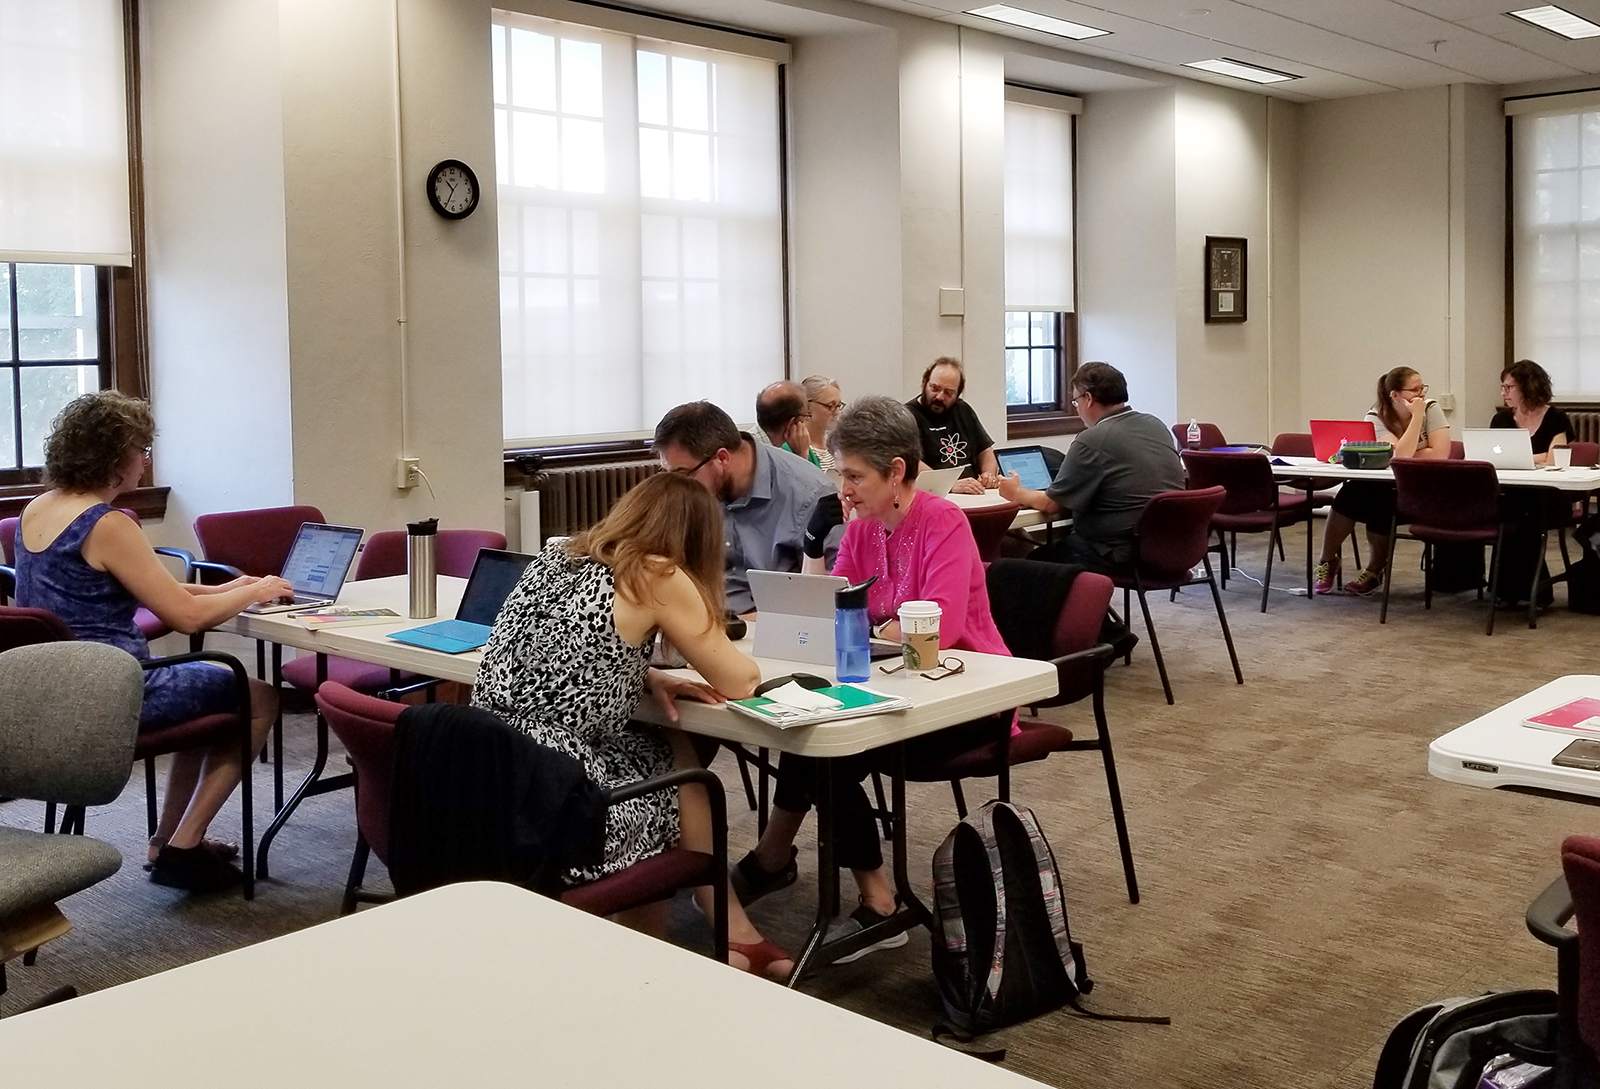 Faculty discuss ideas to enhance learning